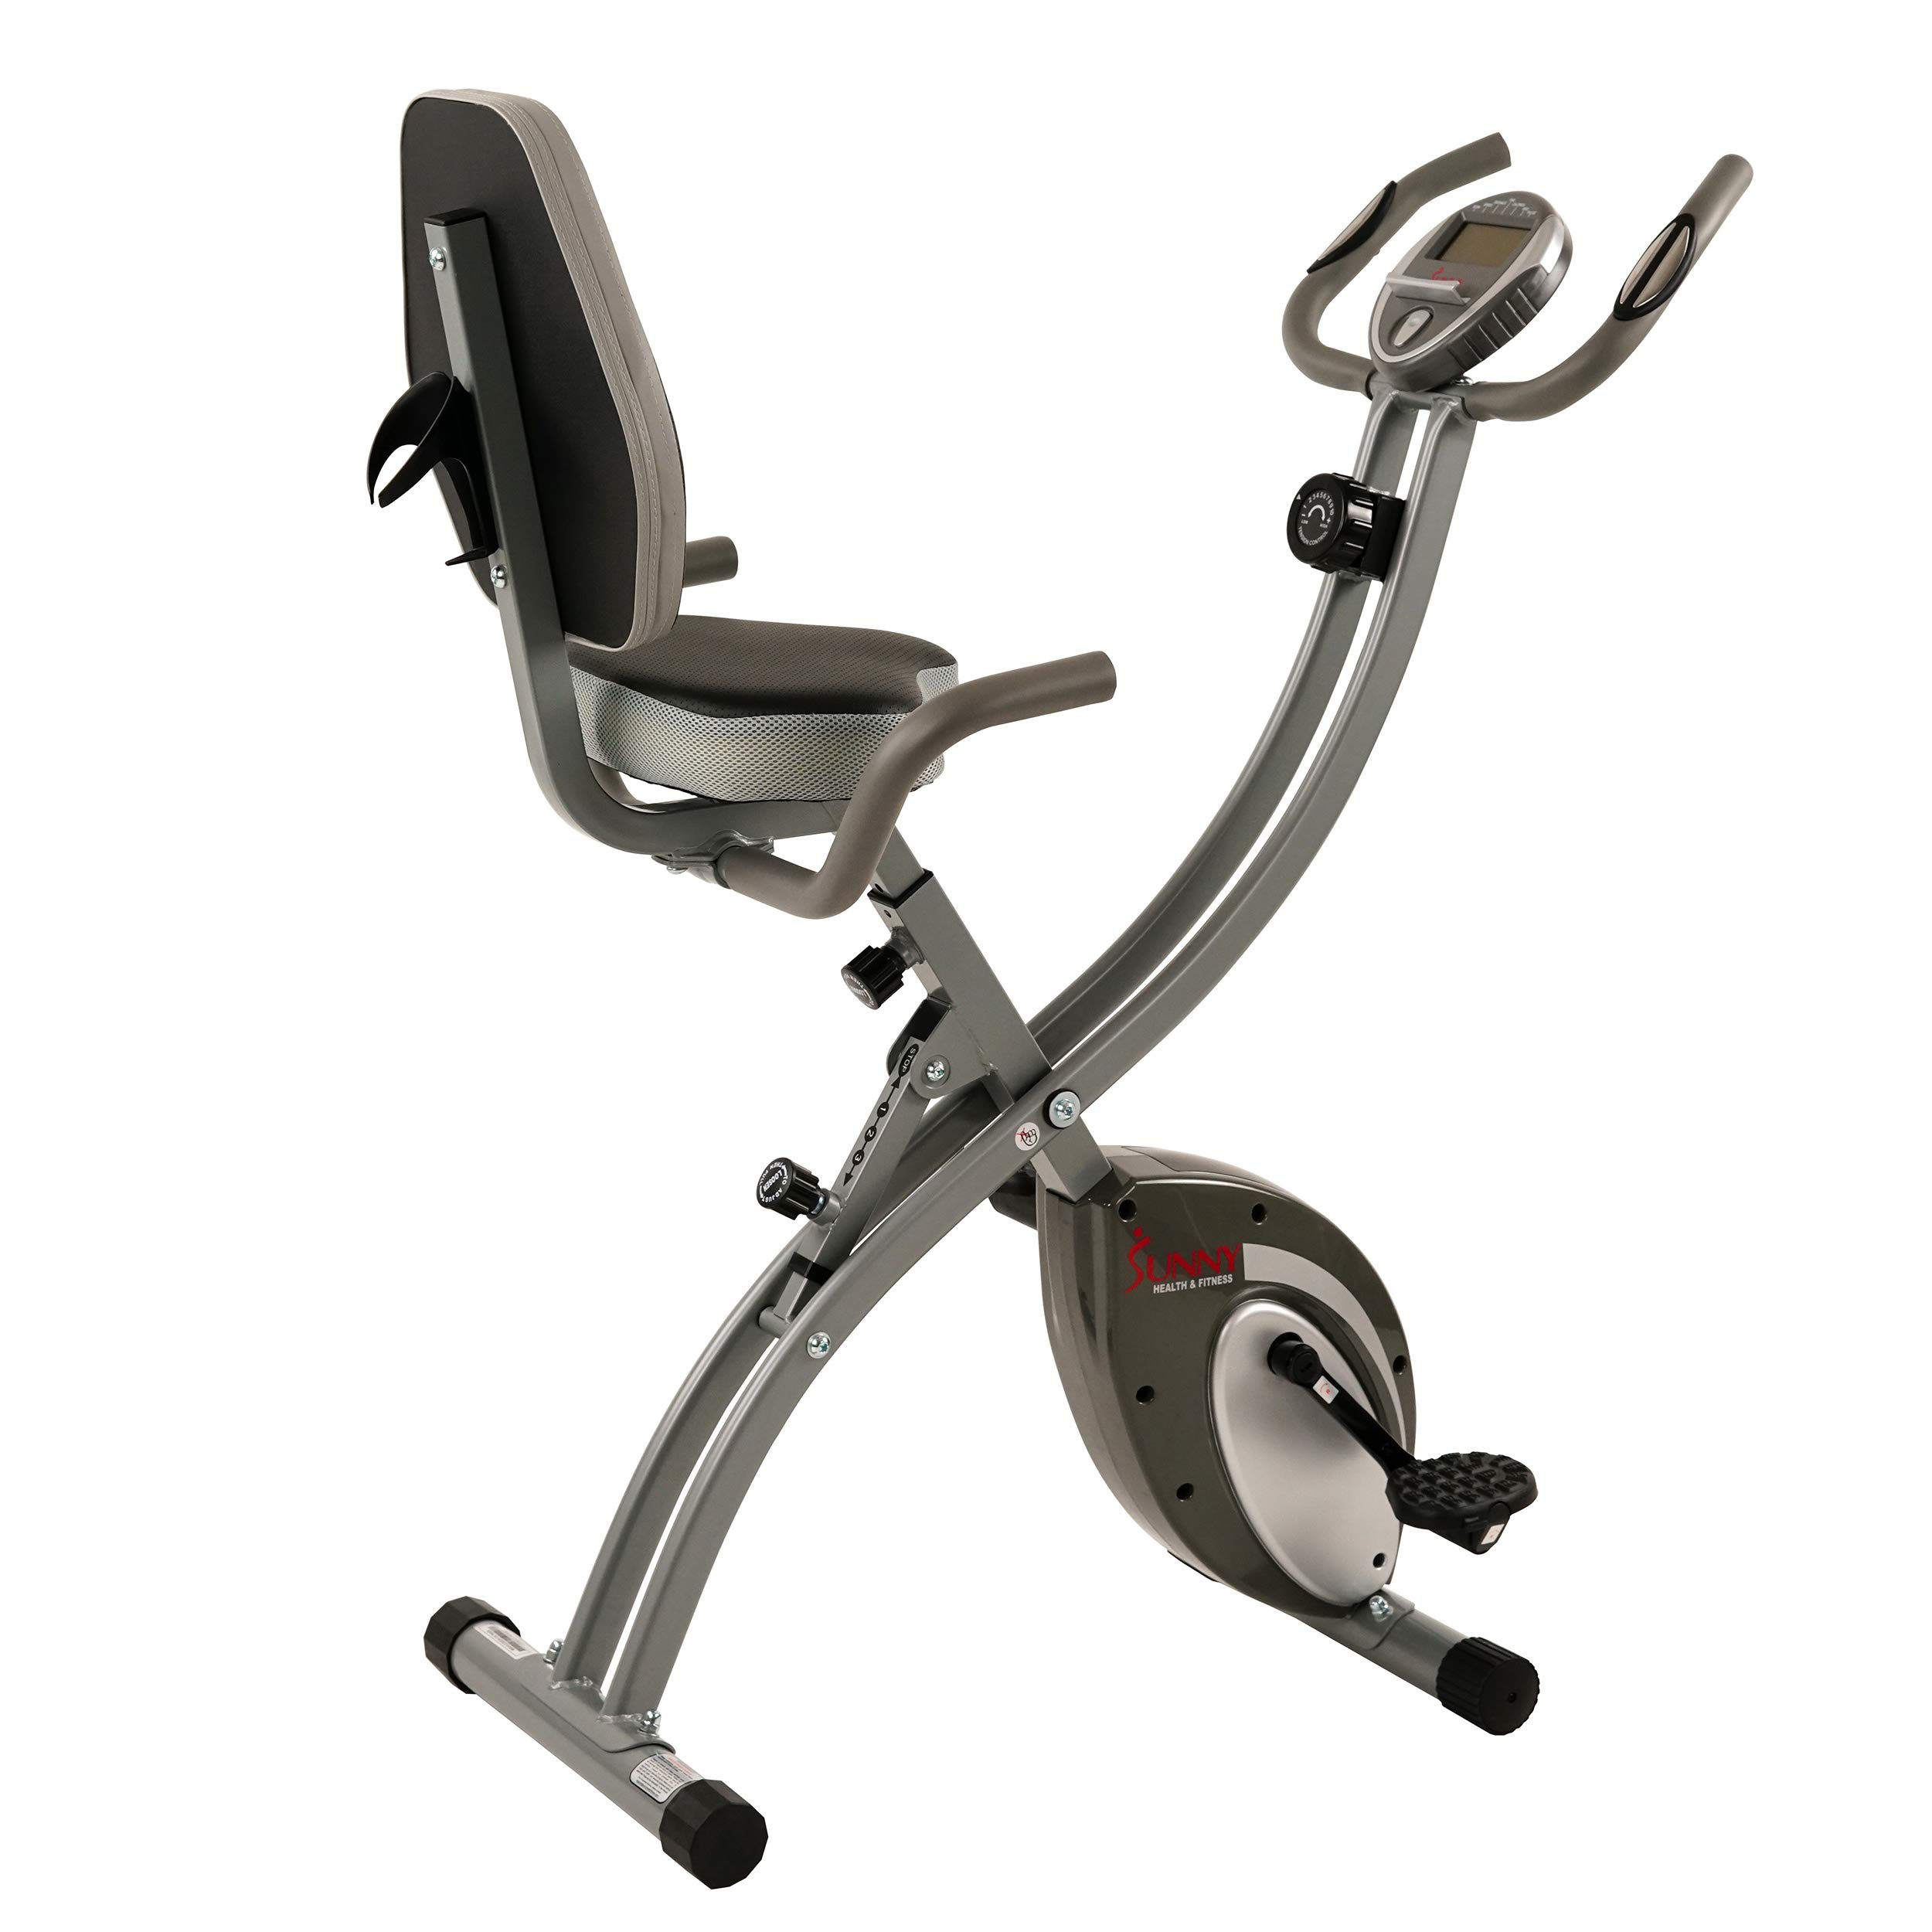 Sunny Health & Fitness Comfort XL Folding Semi-Recumbent Bike - SF-B2721 by Sunny Health & Fitness (Image #6)